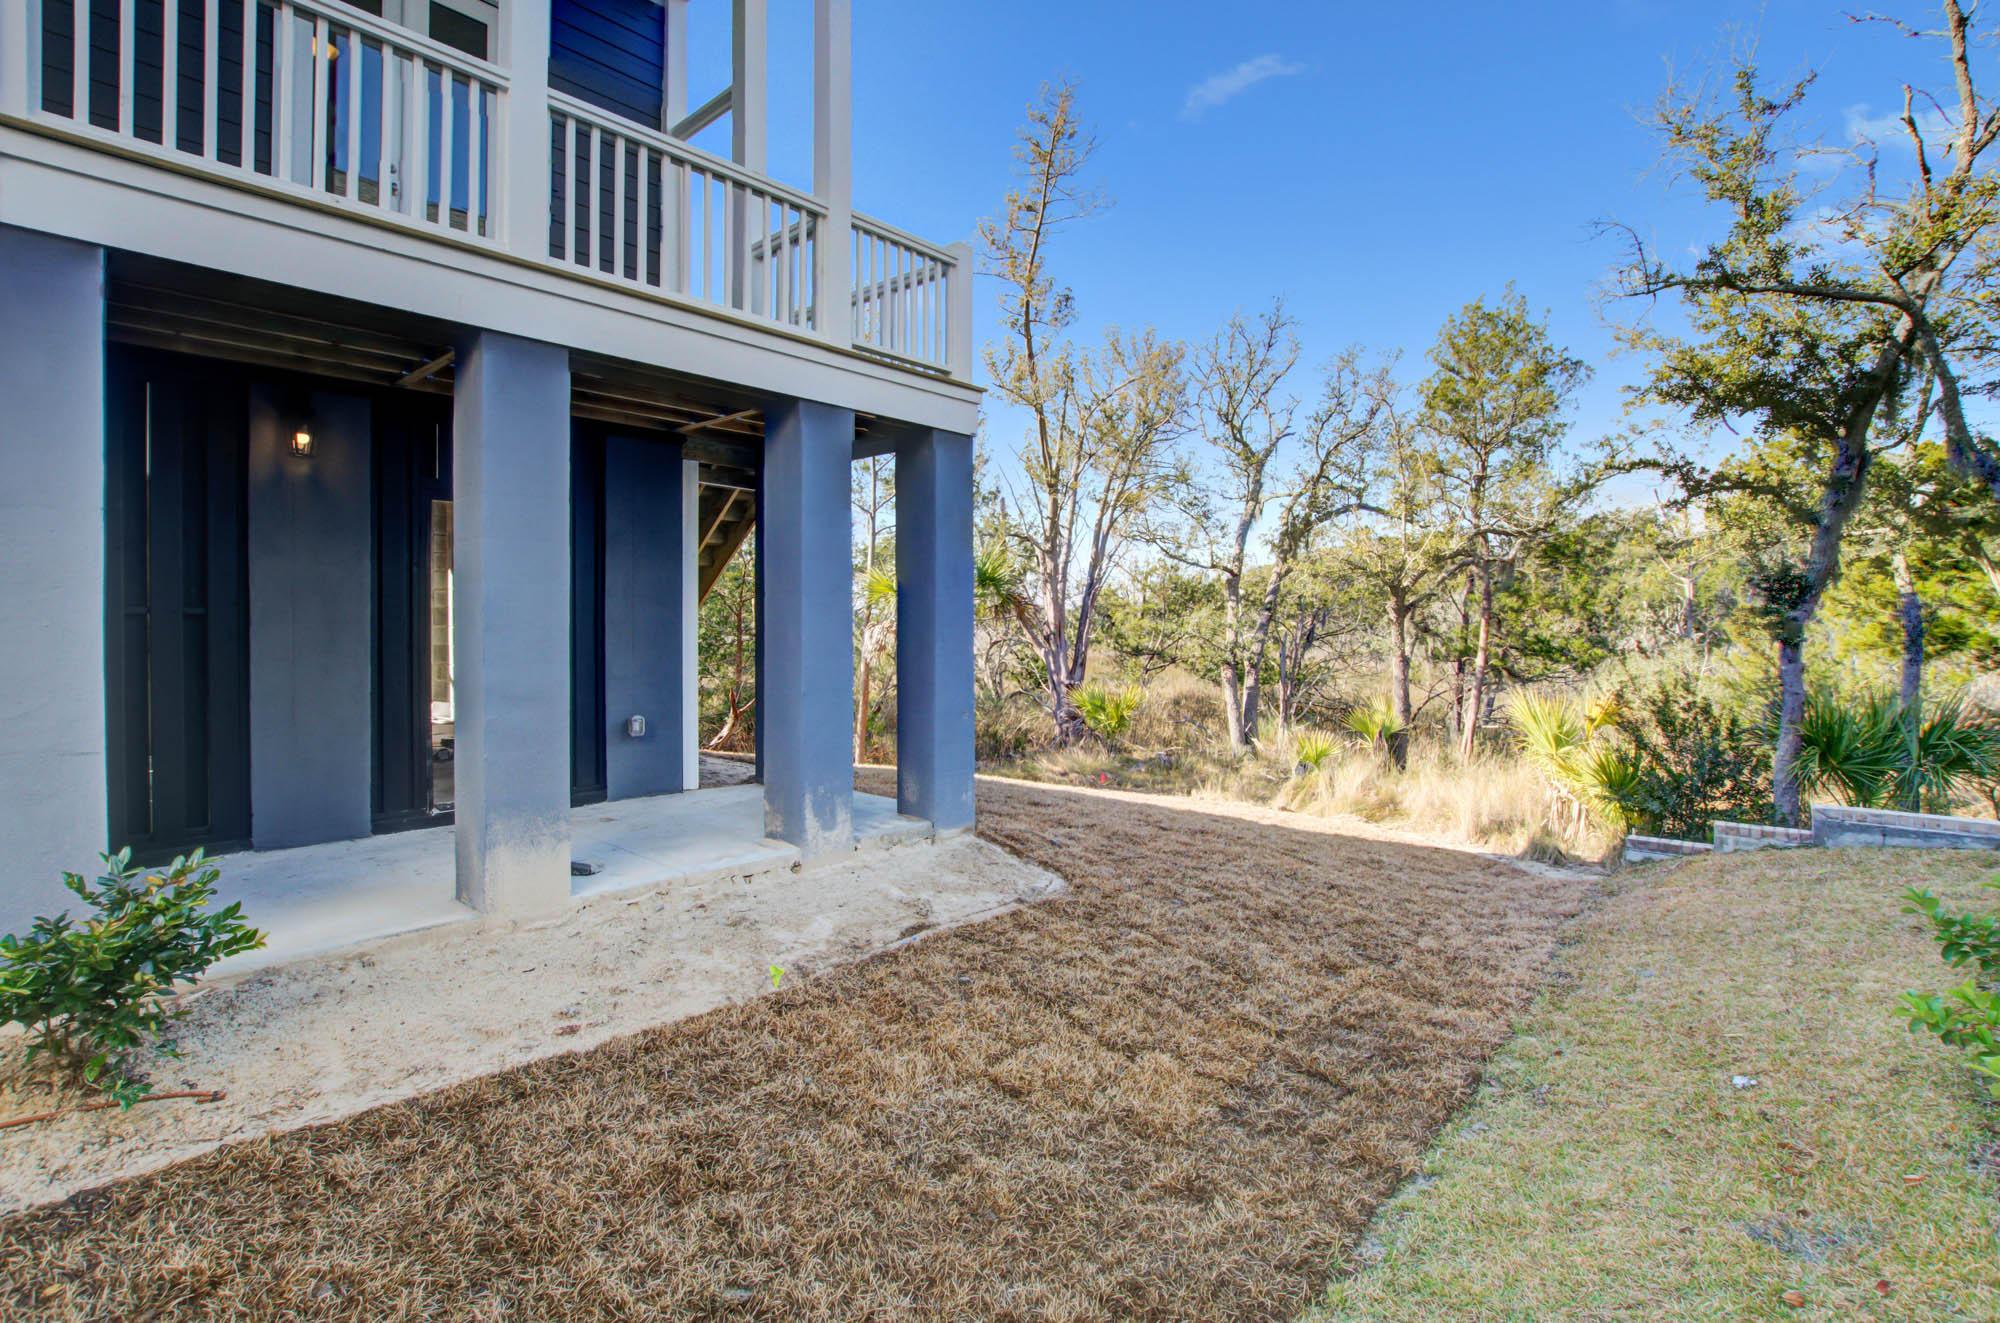 Stratton by the Sound Homes For Sale - 1541 Menhaden, Mount Pleasant, SC - 45